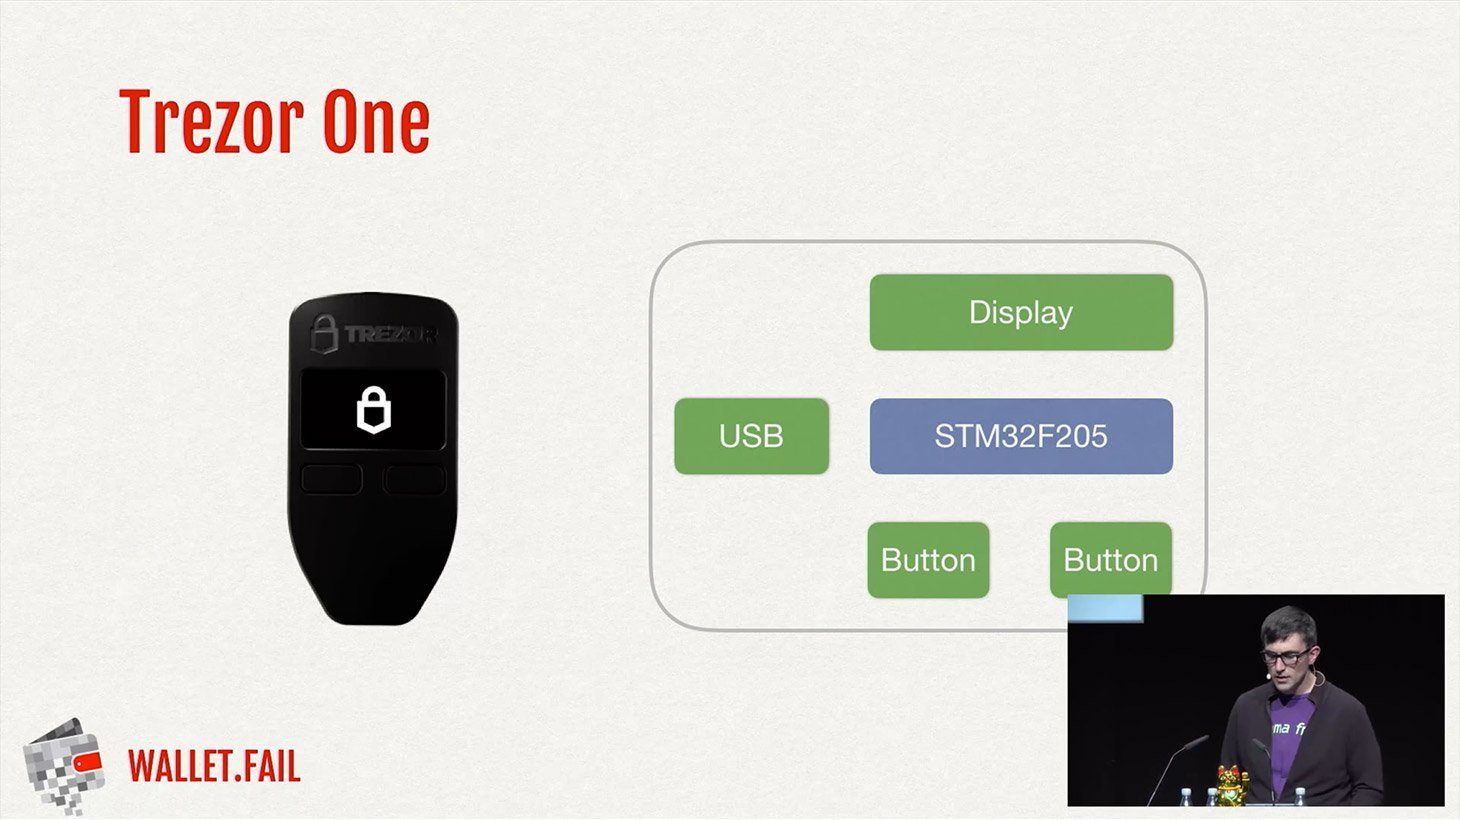 Trezor One security model